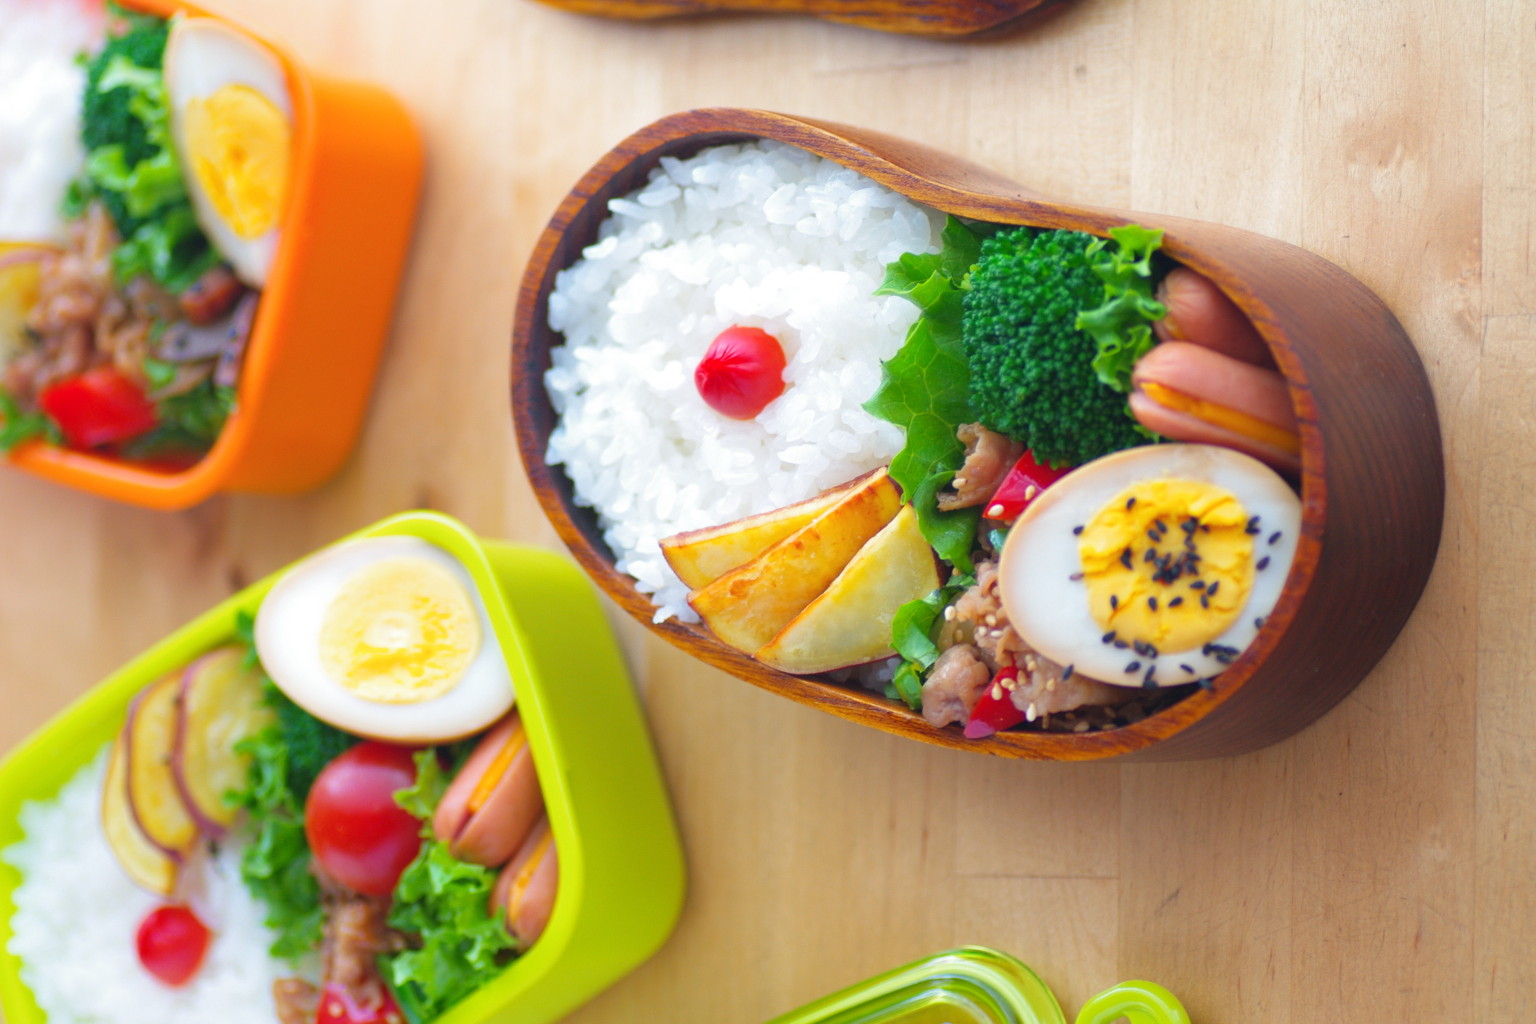 Healthy Snacks 14 Yummy Lunch Box Ideas Your Kids Will Love